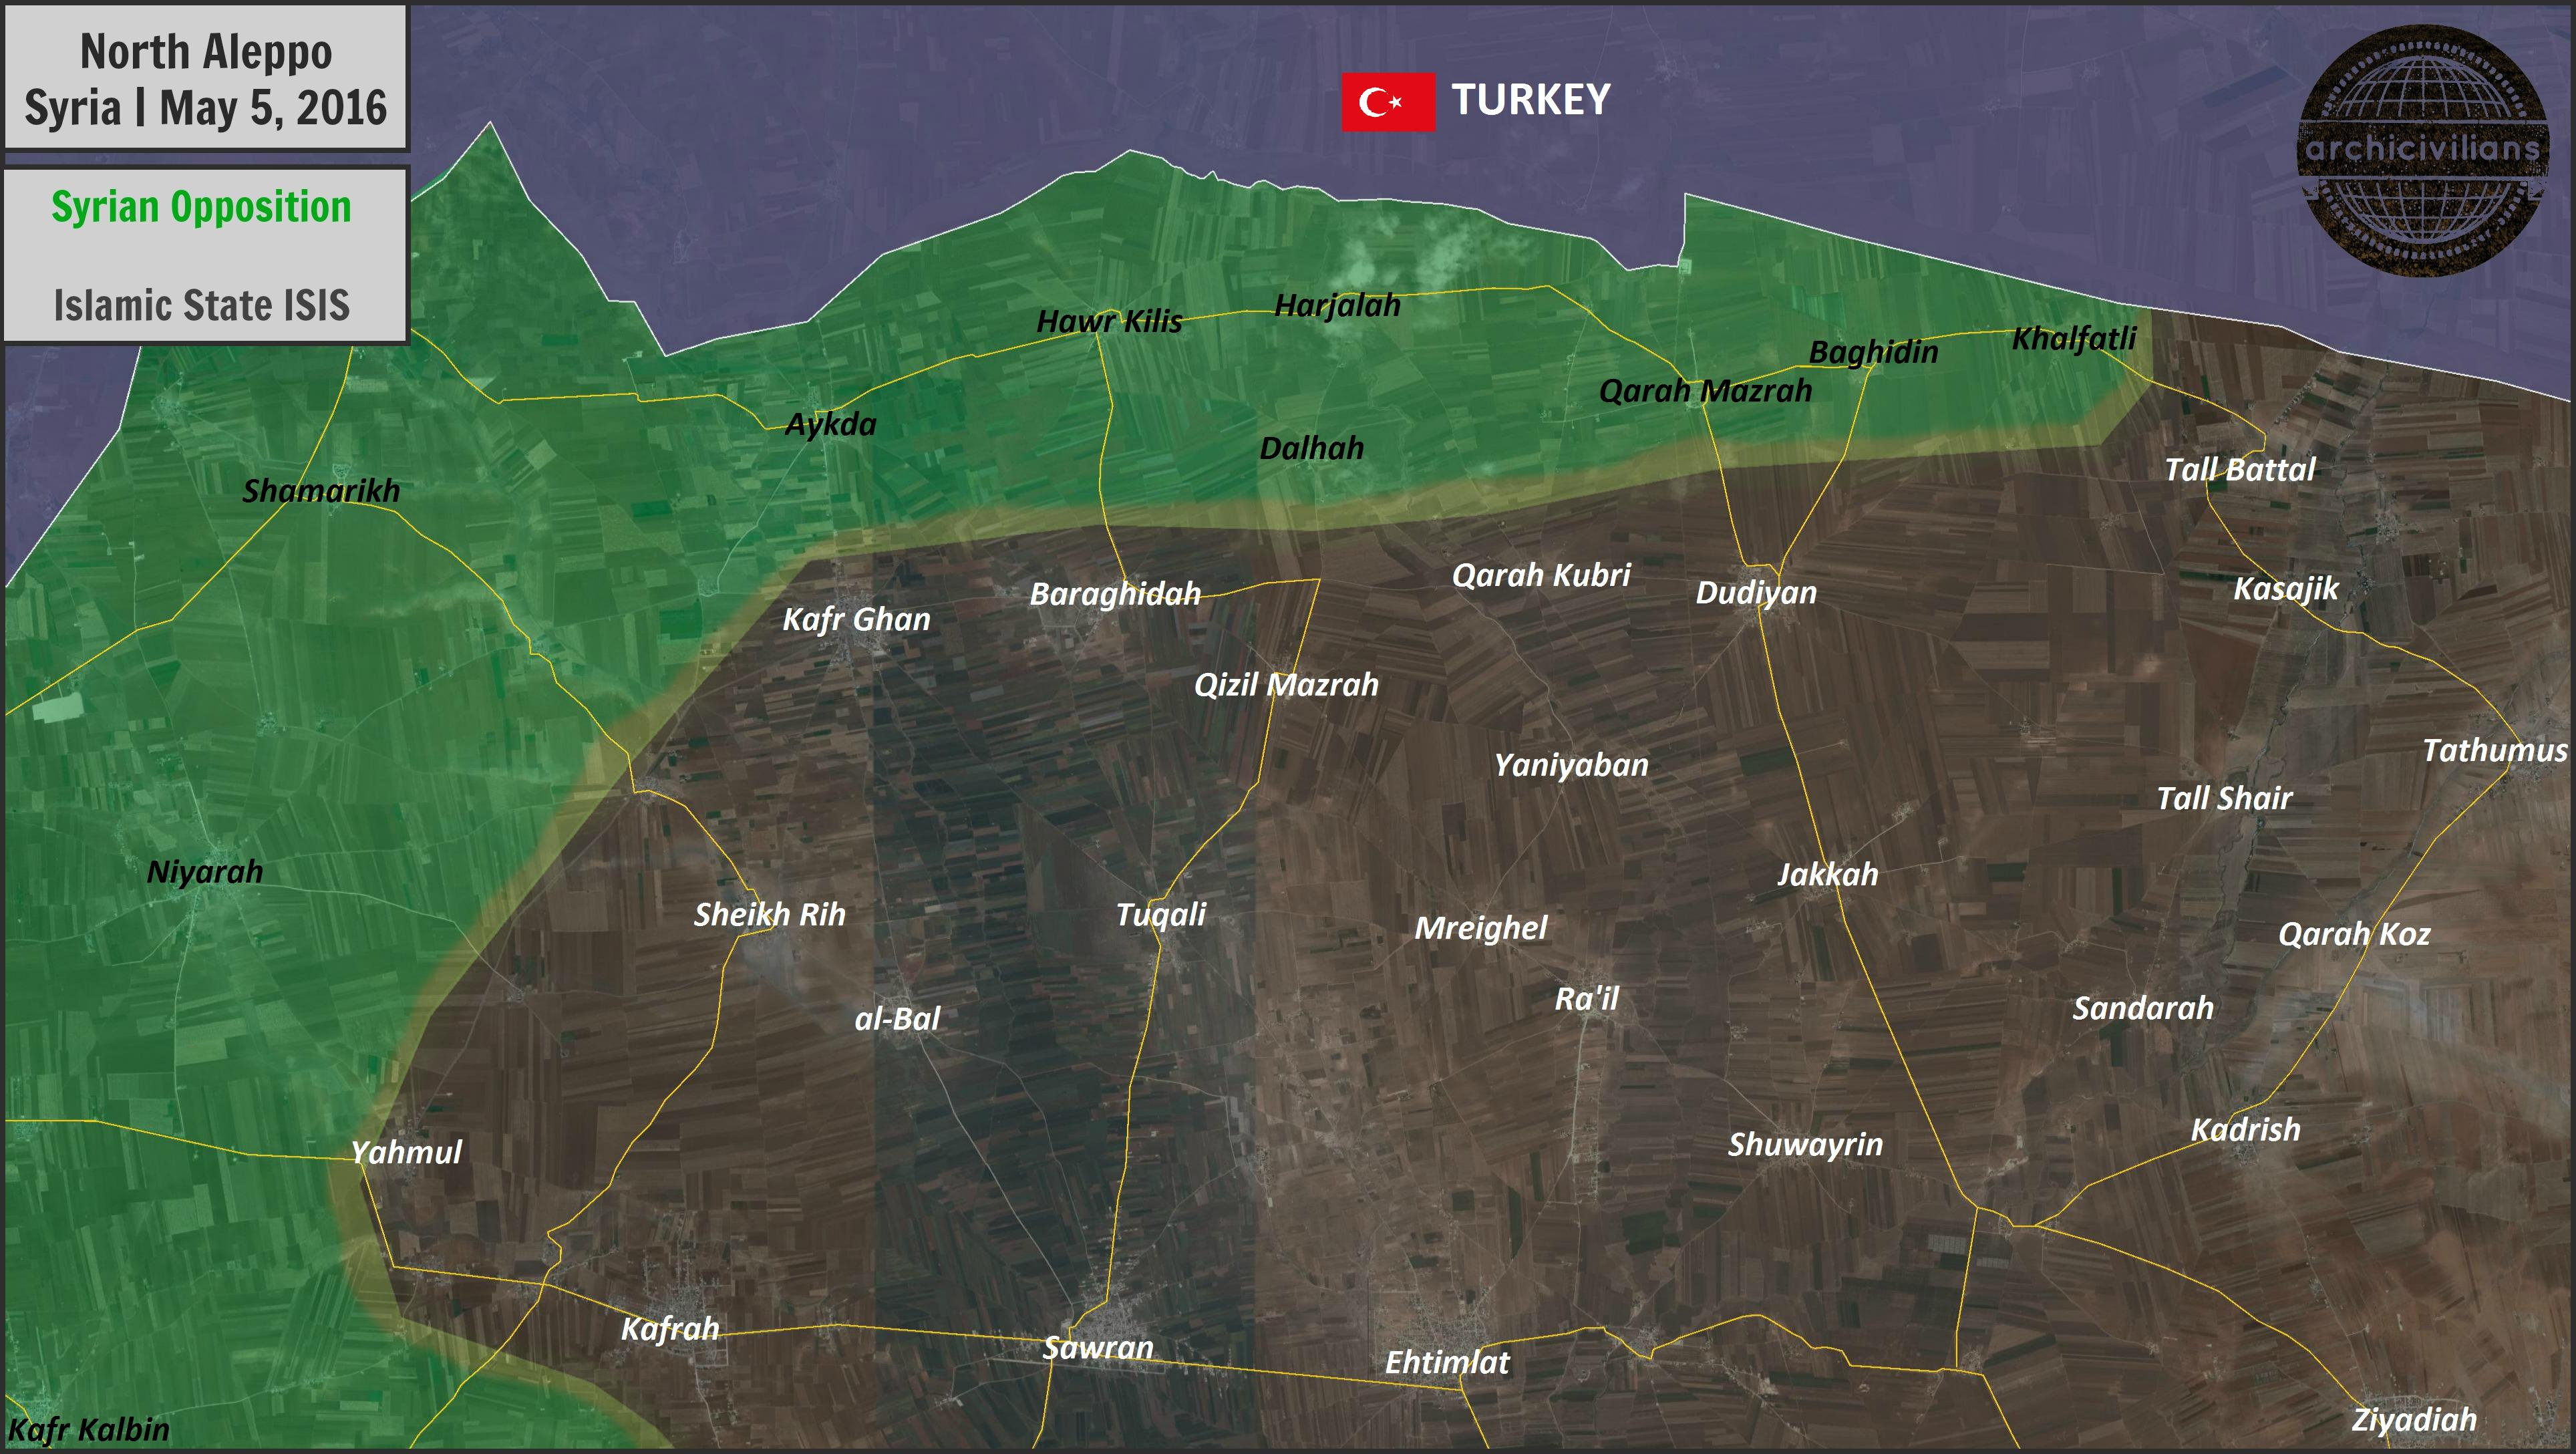 Military Situation in Norhern Aleppo, Syria on May 5